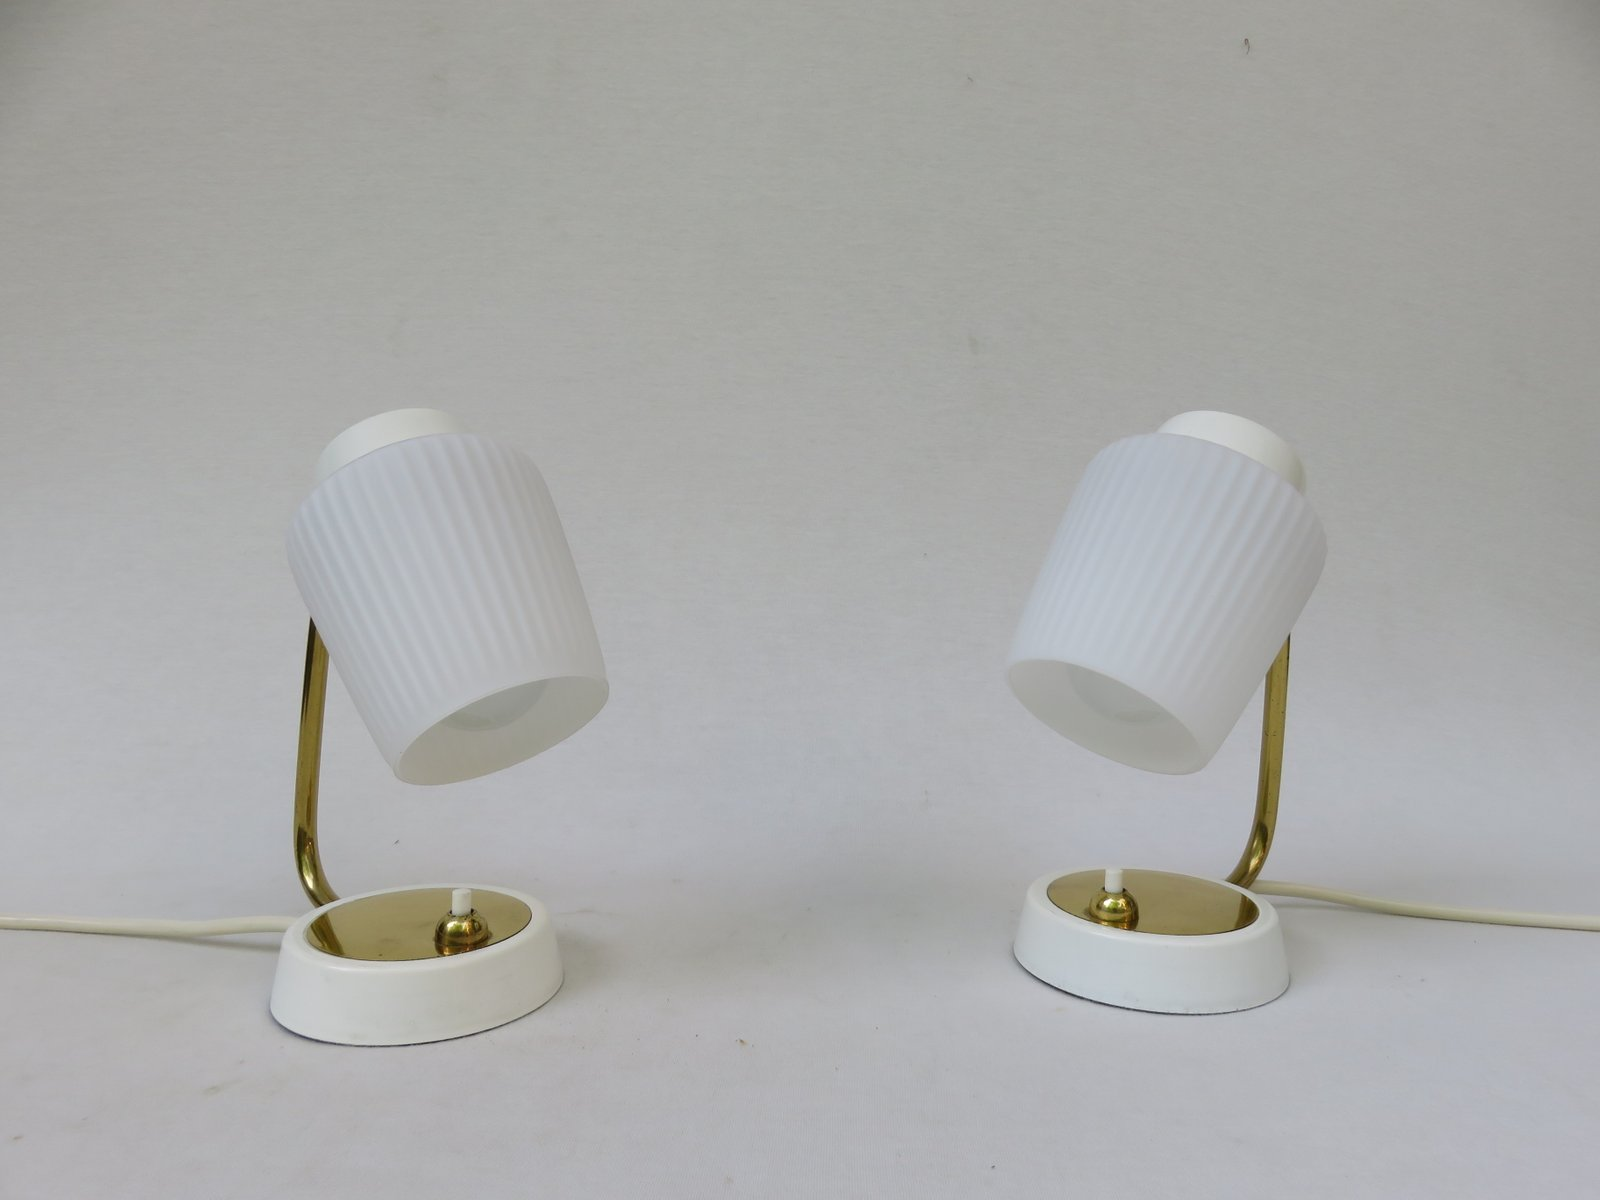 Brass Touch Lamps Bedside Brass Bedside Lamps 1950s Set Of 2 For Sale At Pamono